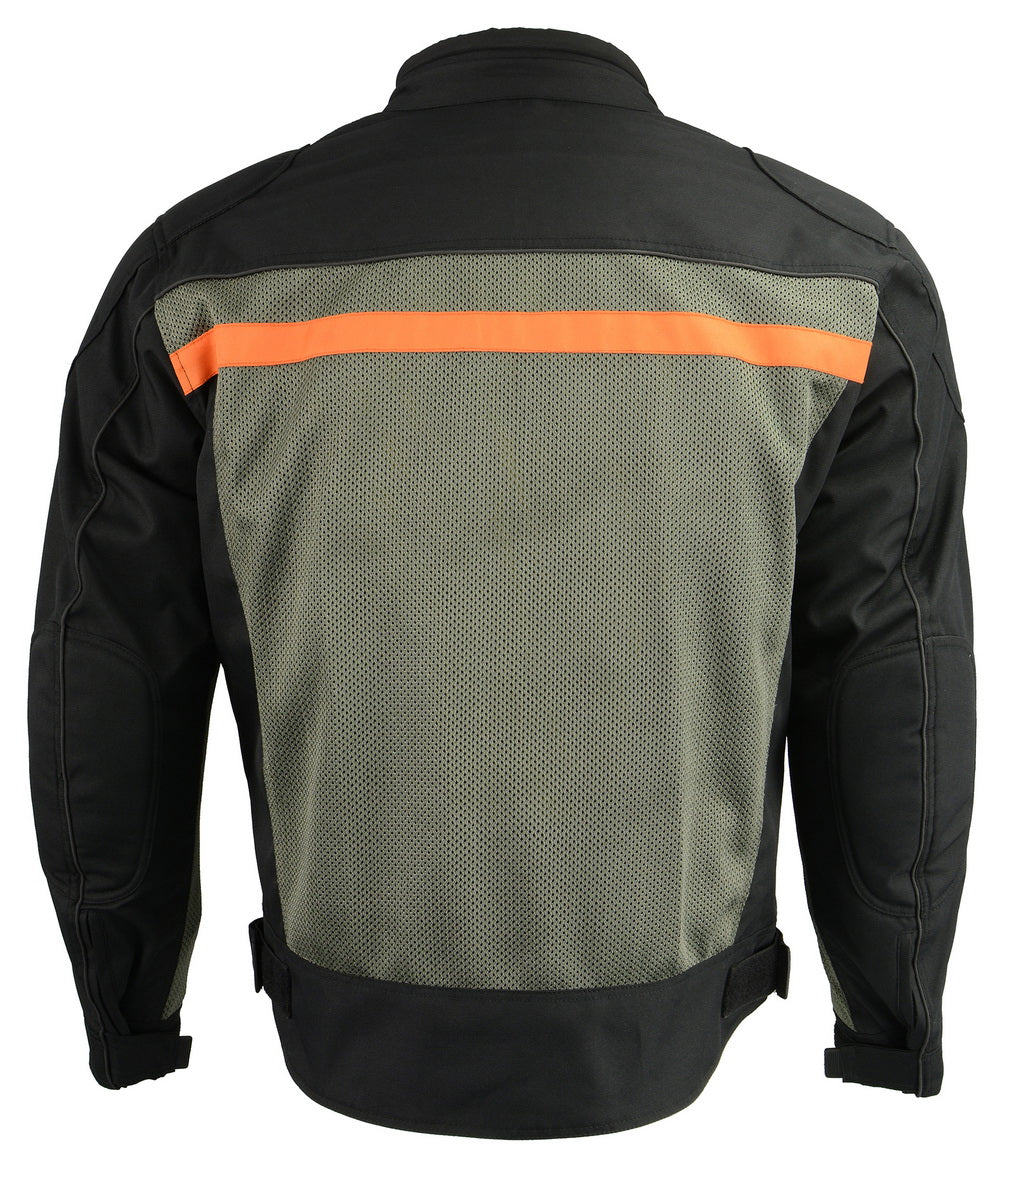 M Boss Motorcycle Apparel BOS11707 Mens Black and Grey Nylon and Mesh